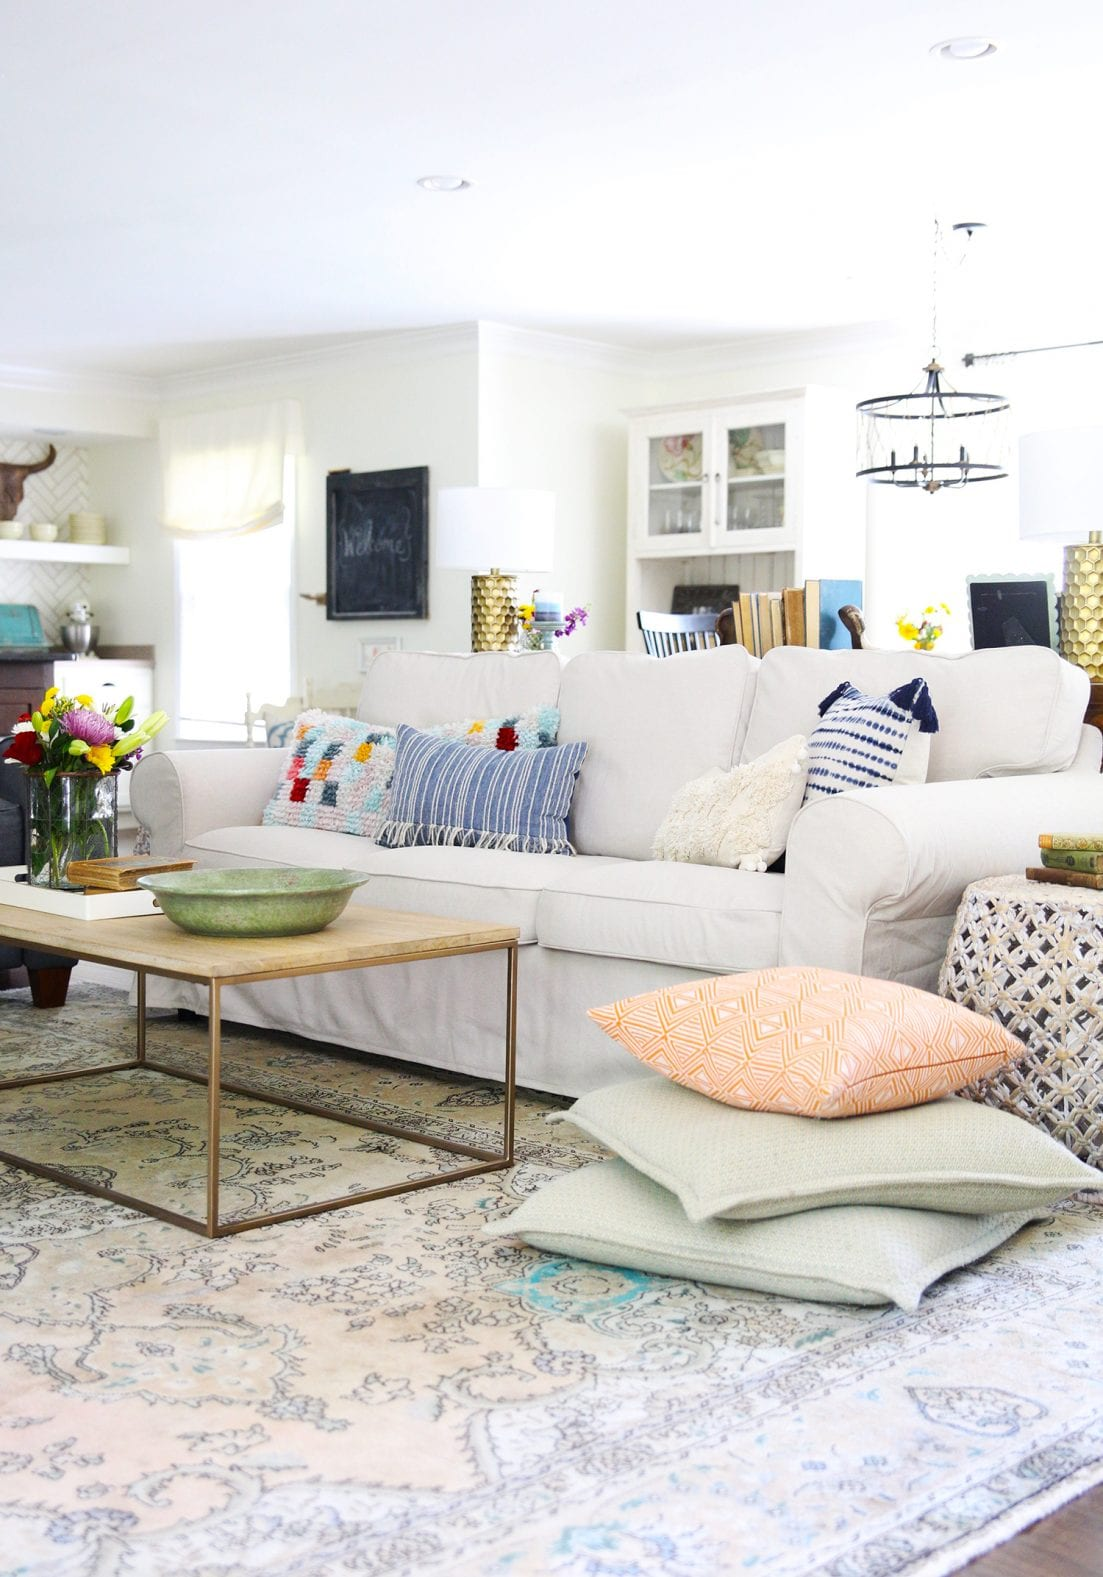 10 foolproof decorating tips - coffee table